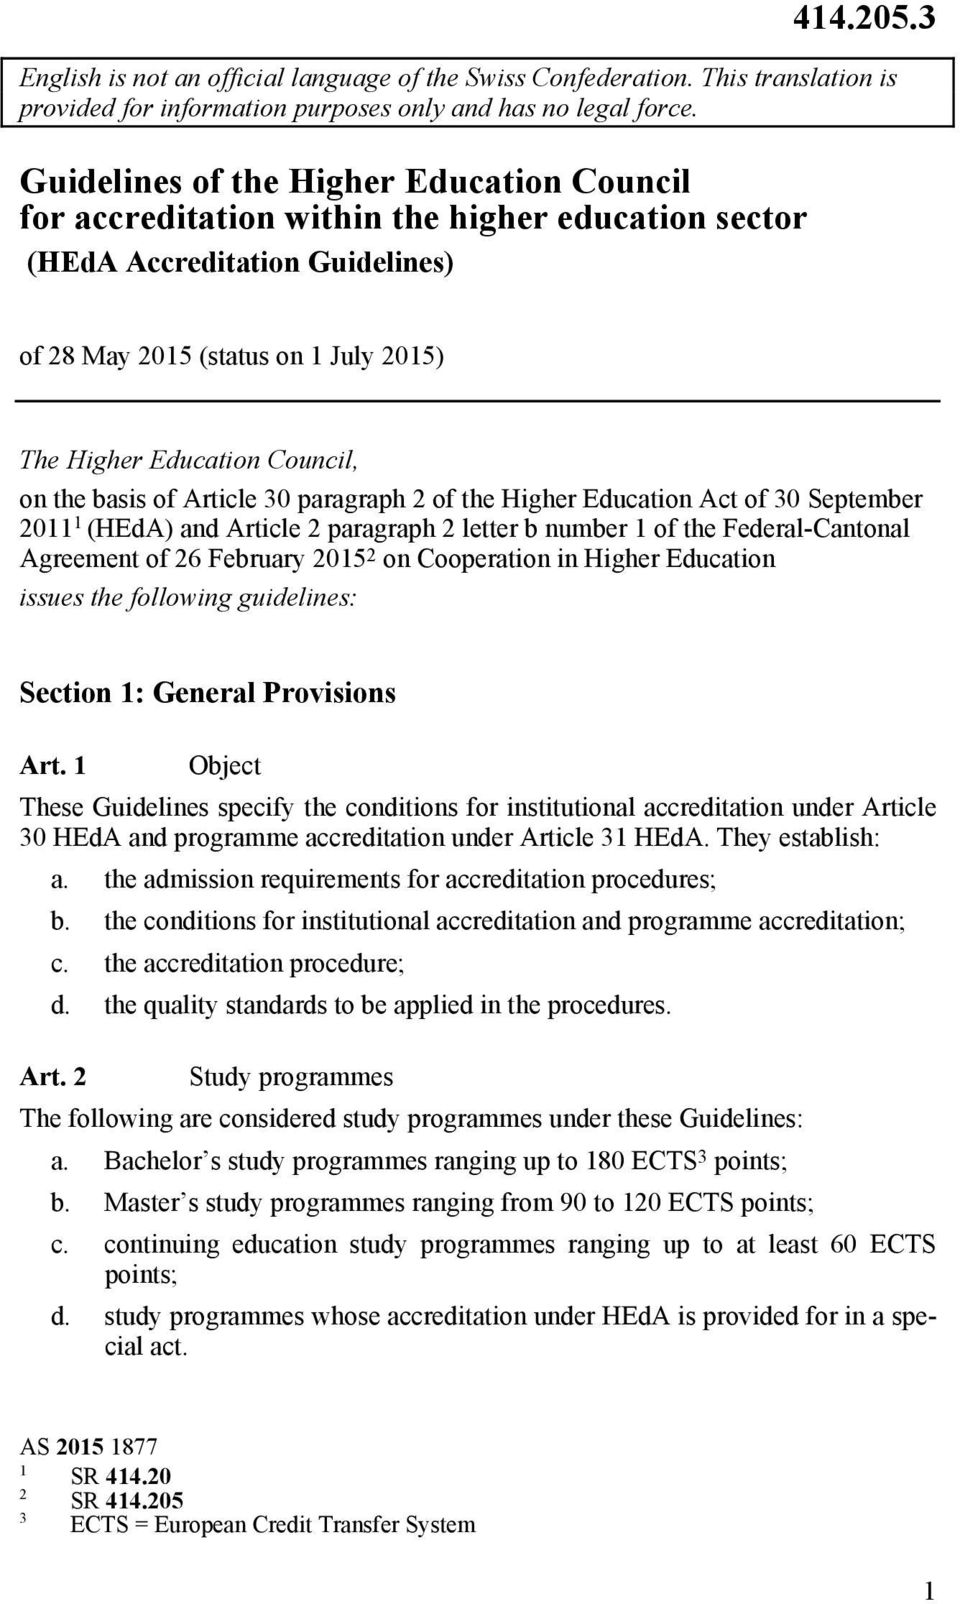 of 8 May 05 (status on July 05) The Higher Education Council, on the basis of Article 0 paragraph of the Higher Education Act of 0 September 0 (HEdA) and Article paragraph letter b number of the